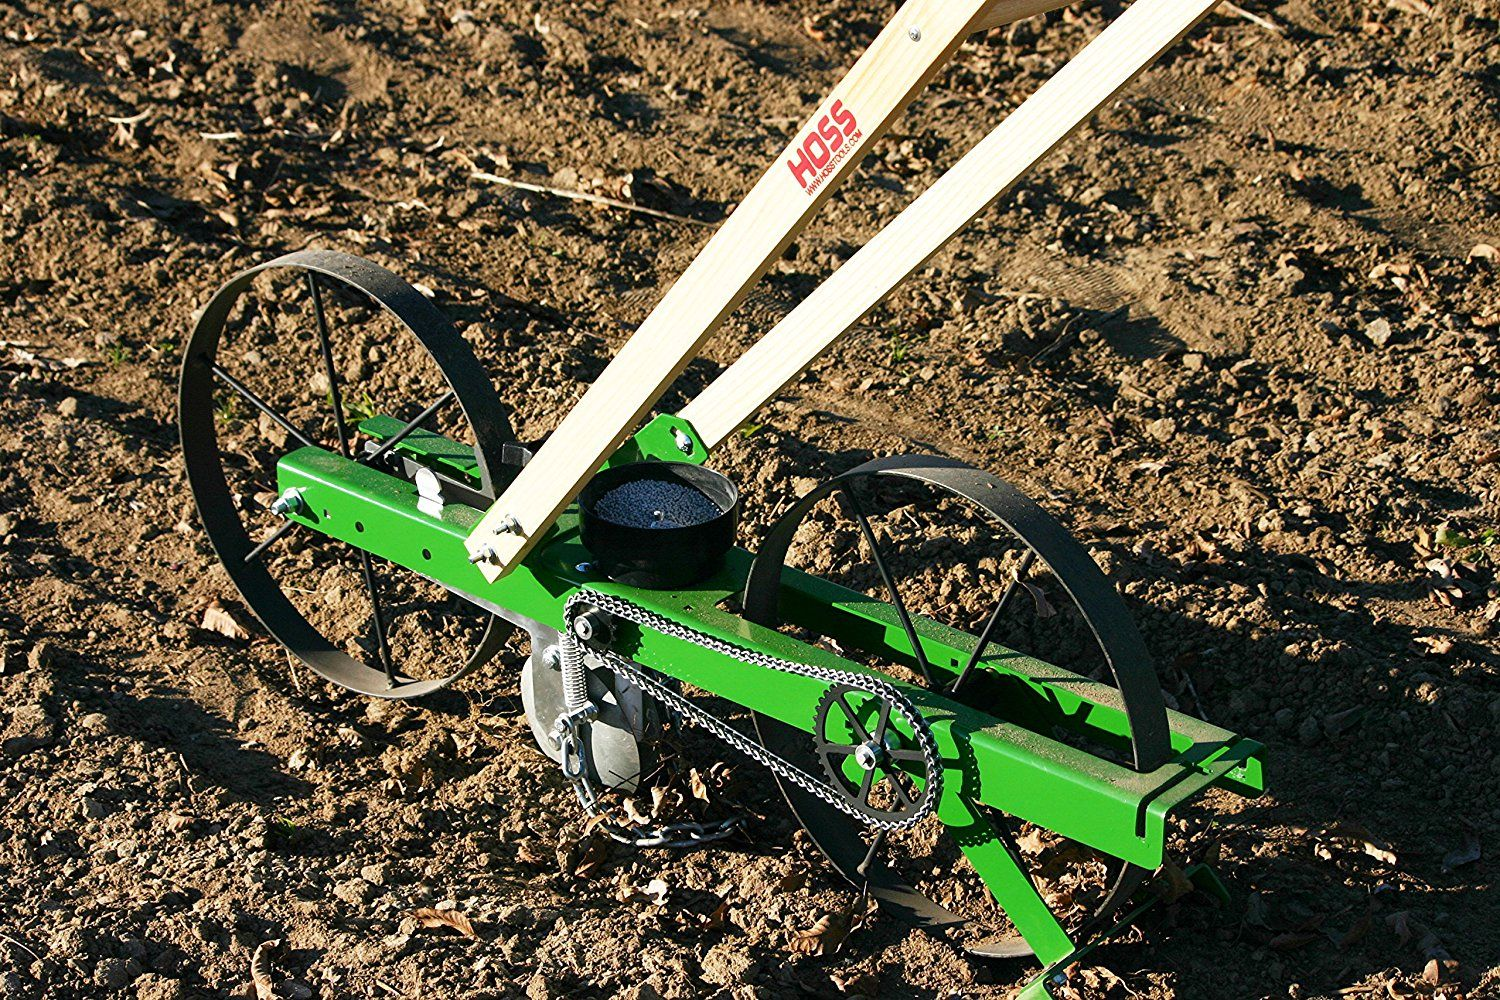 Hoss Tools Seeder for small urban farms | Urban Gardening Tools ...